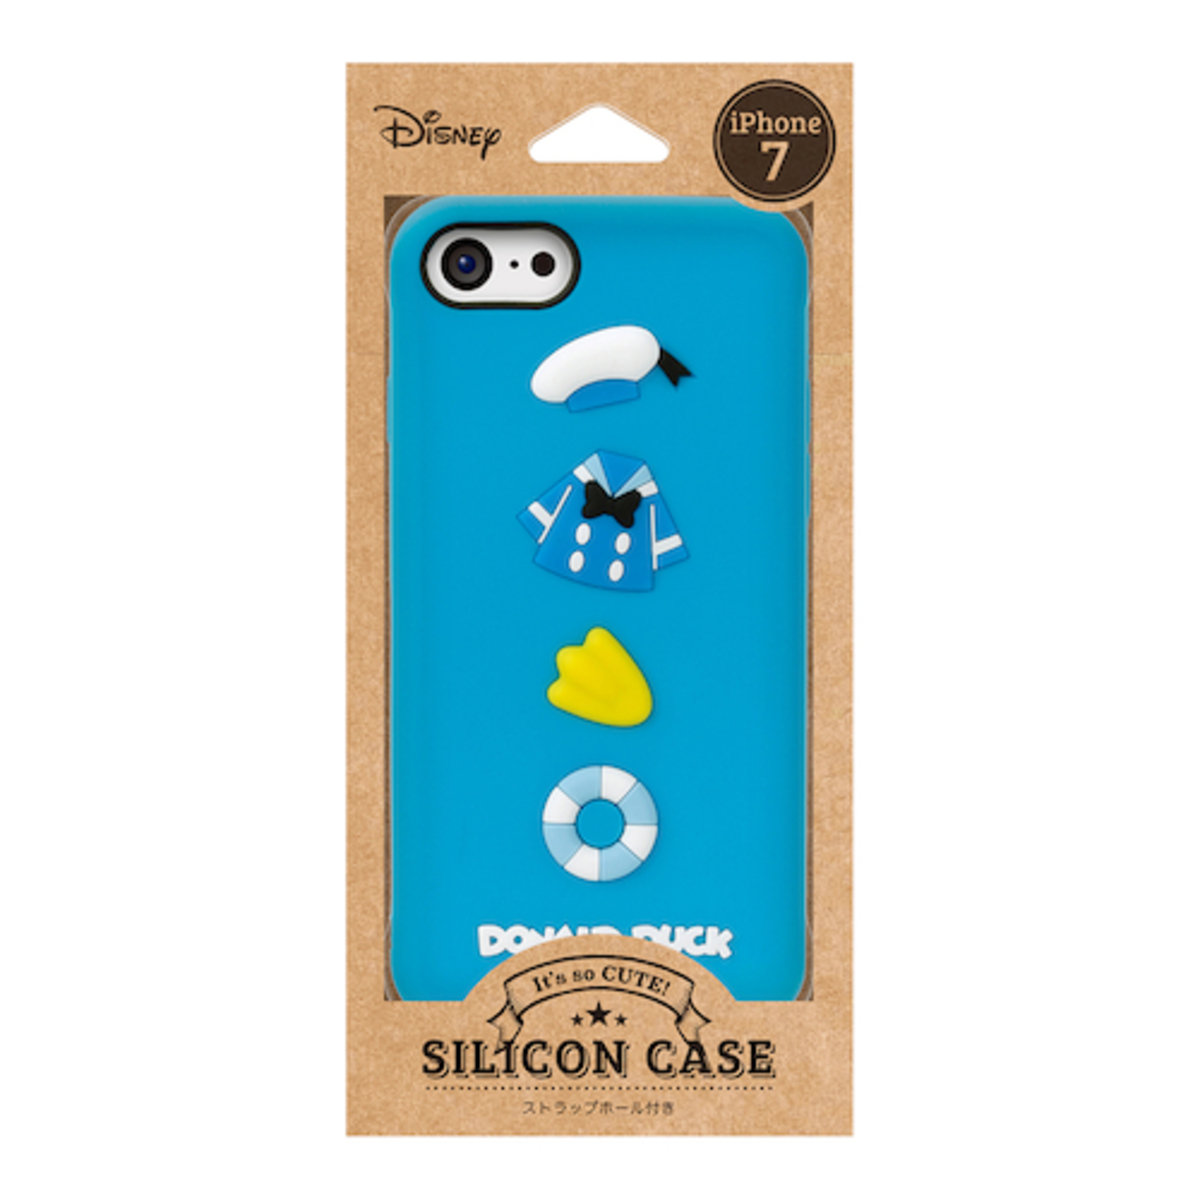 iPhone 7 / iPhone 8 Dsiney Donald Duck Silicon Phone Case DCS145DND